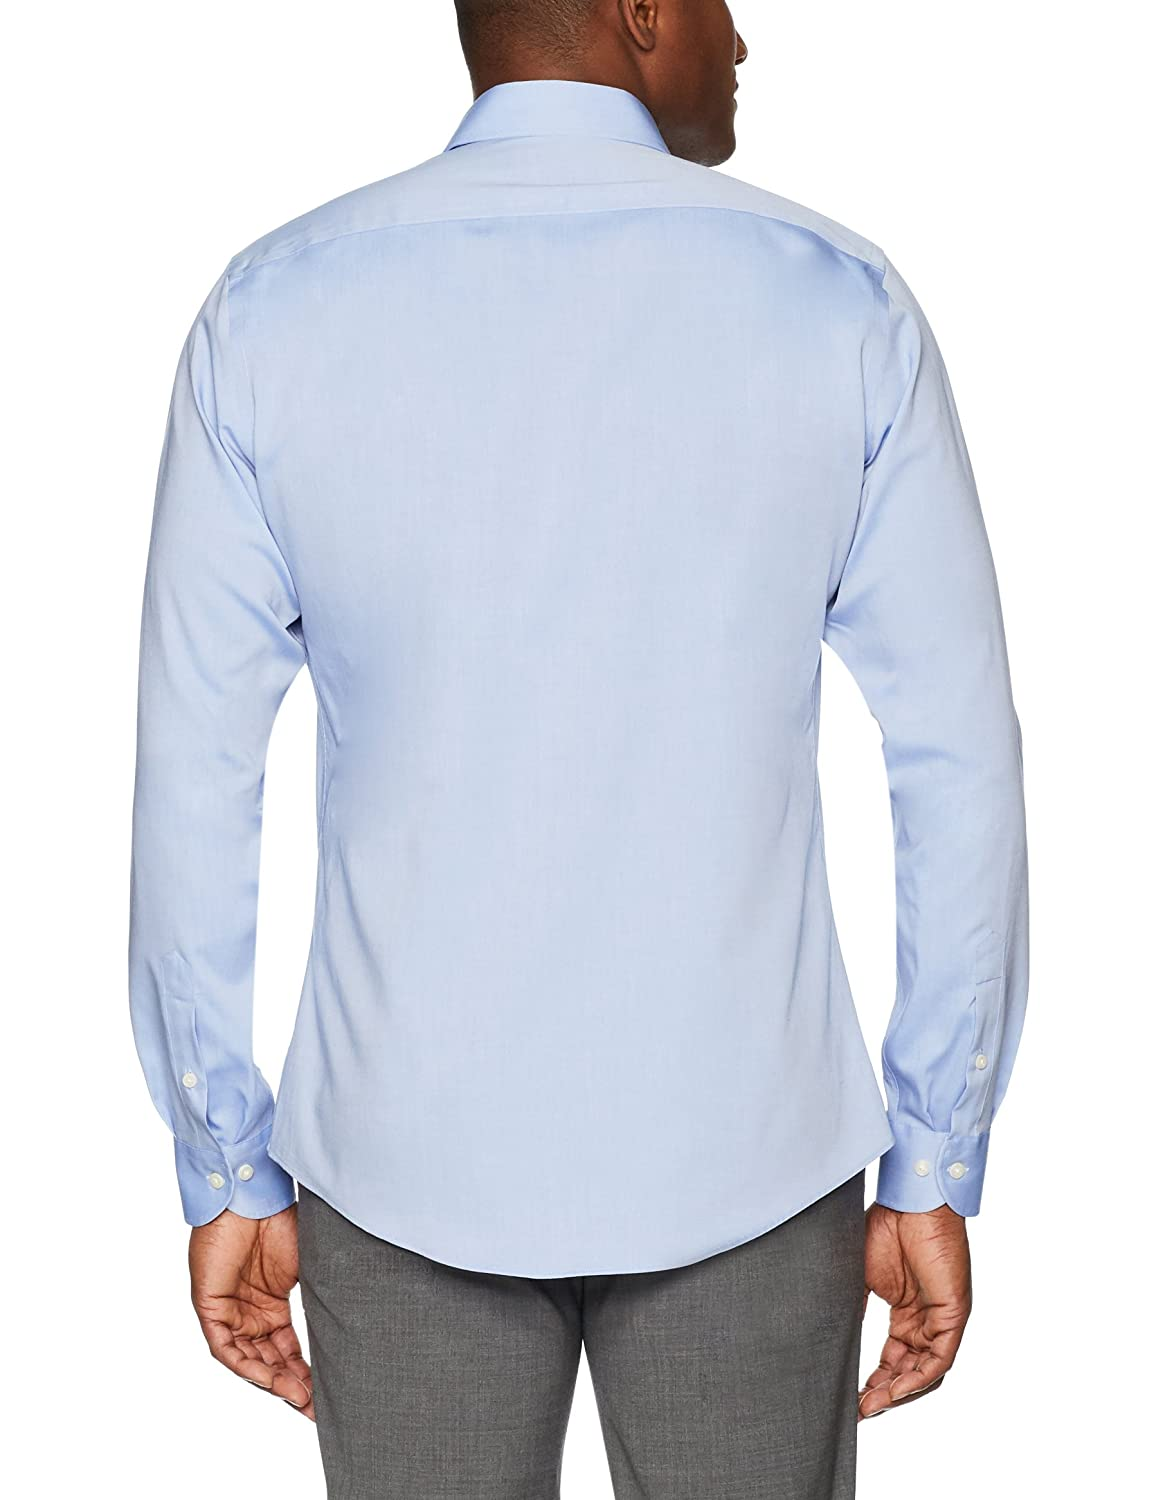 569bc595003 Top 10 Most Expensive Dress Shirts